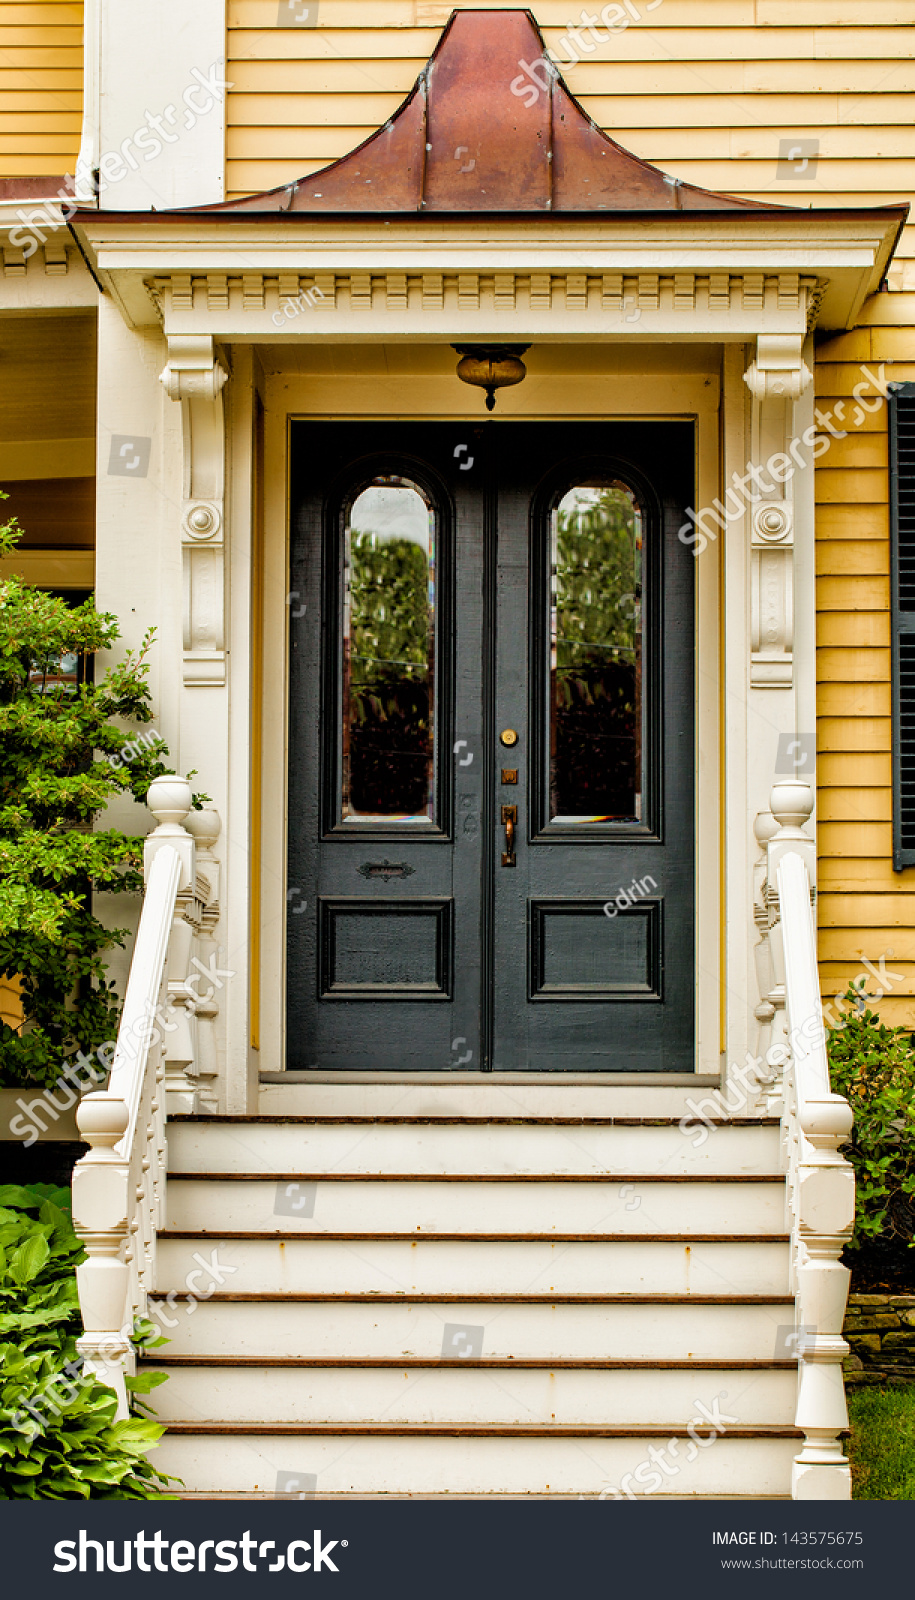 Front Door Of A Vintage Yellow House With White Trim And A